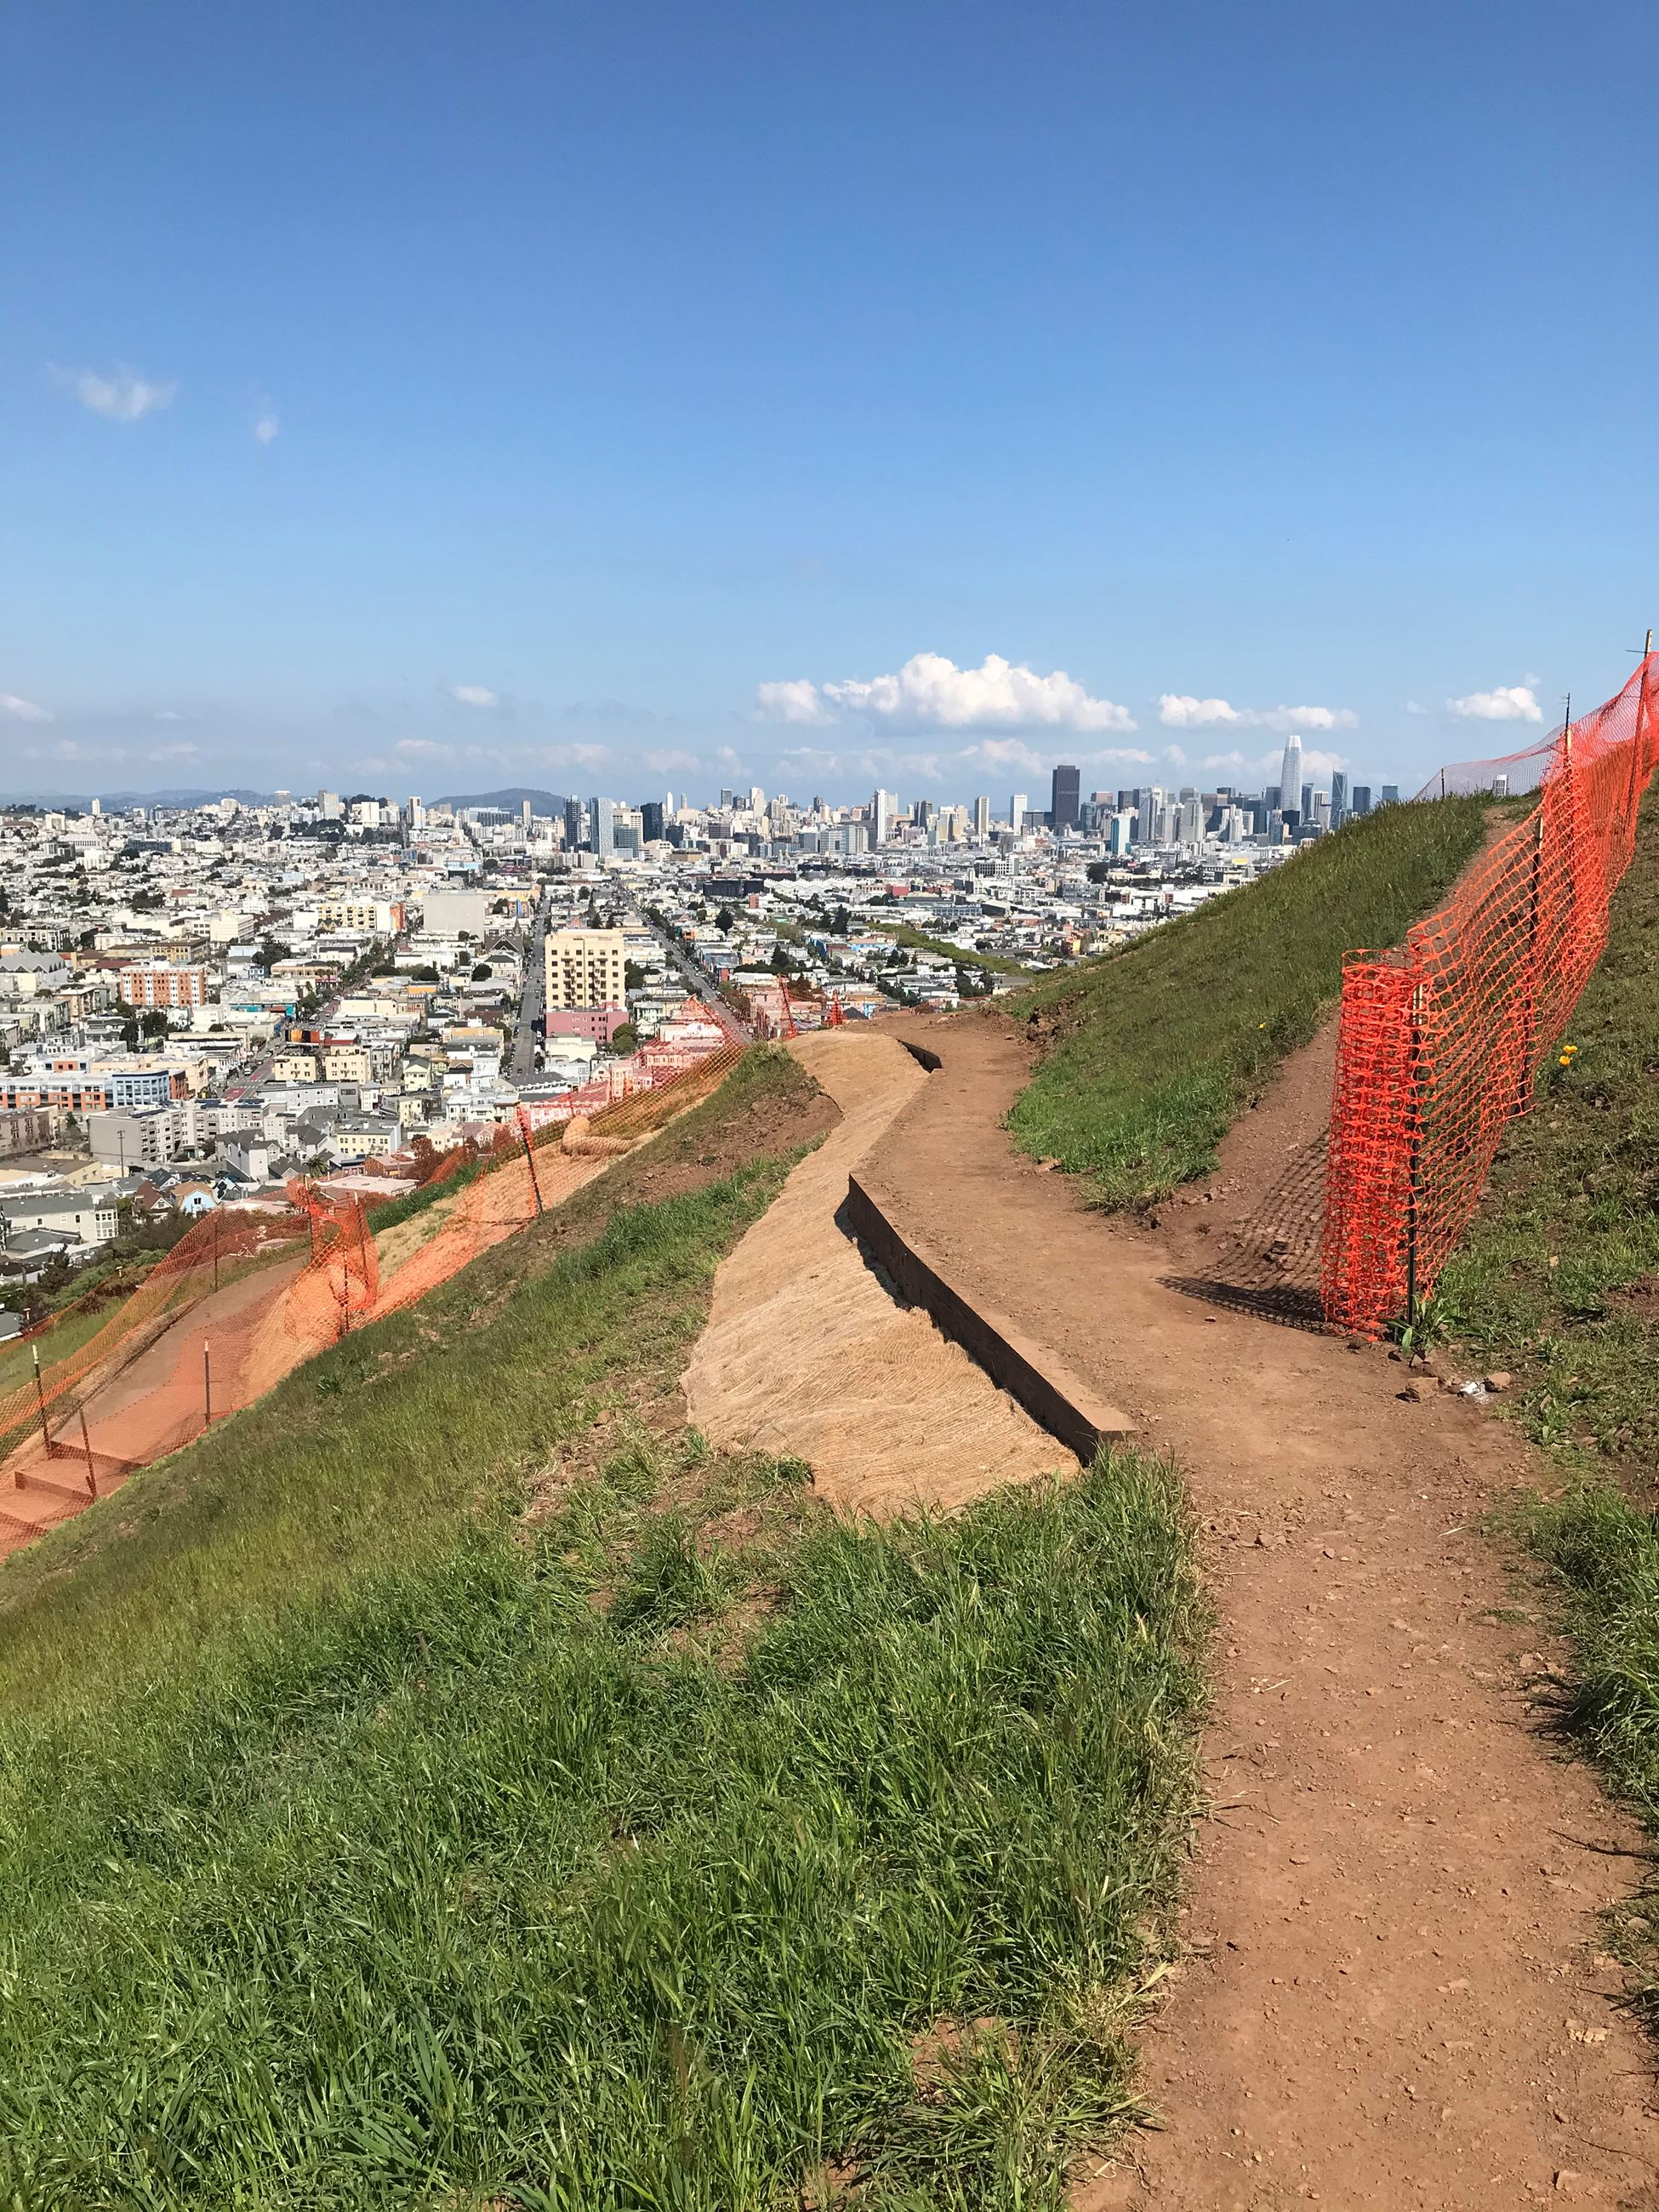 View of a trail splitting off three ways at Bernal Heights. Upper Trail is shown with orange constru